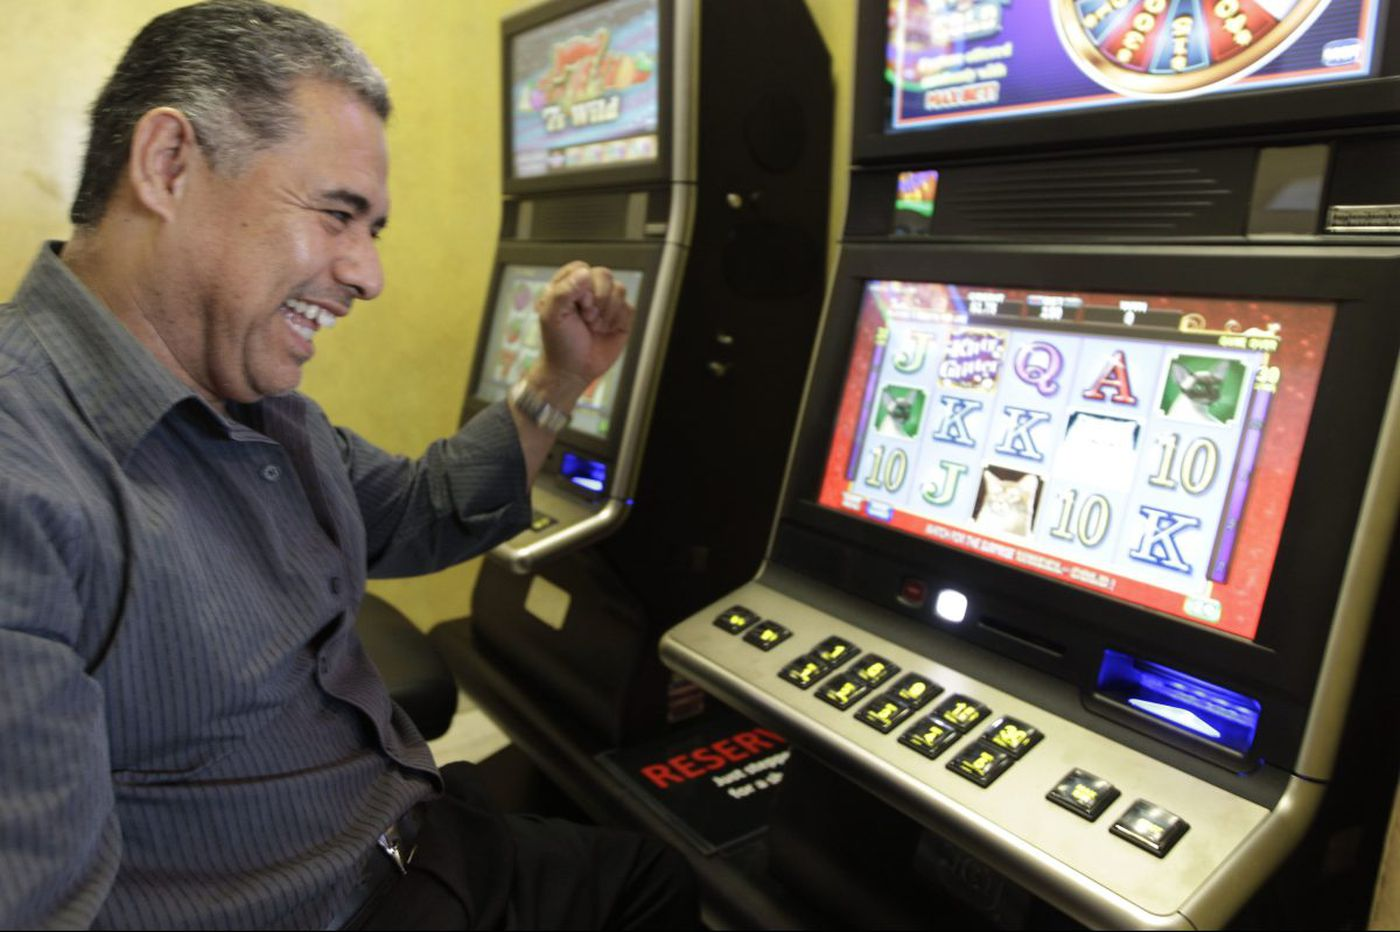 Video-gaming terminals are not what Philly needs, Council members say